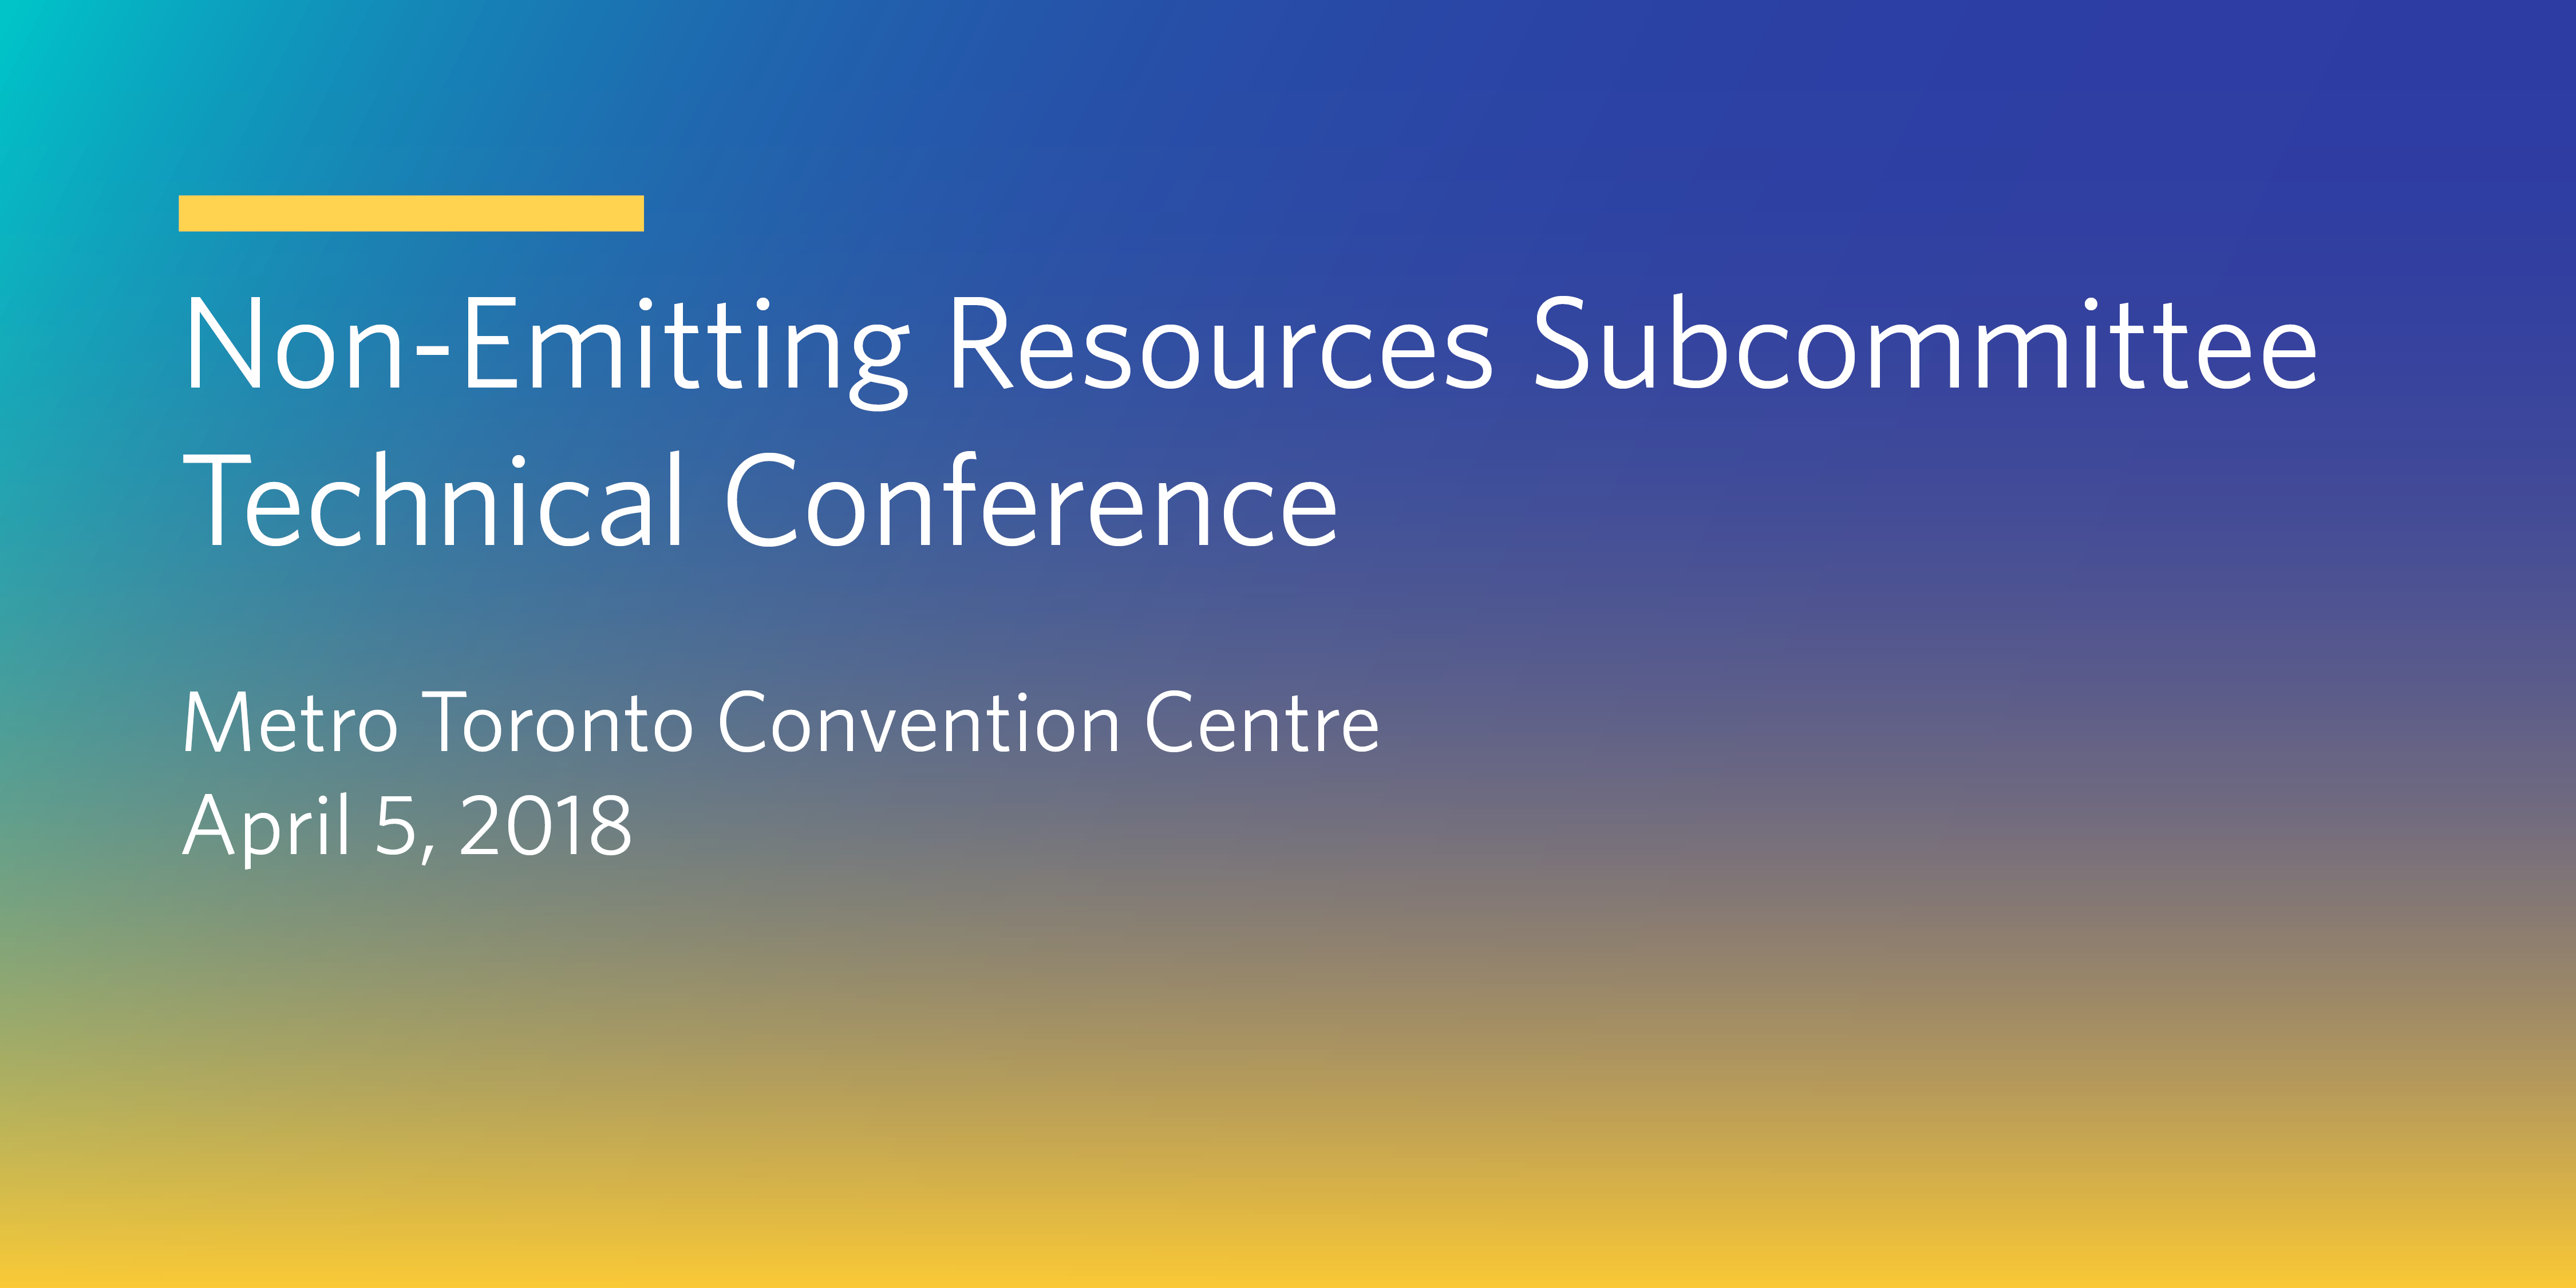 Non-Emitting Resource Subcommittee Technical Conference